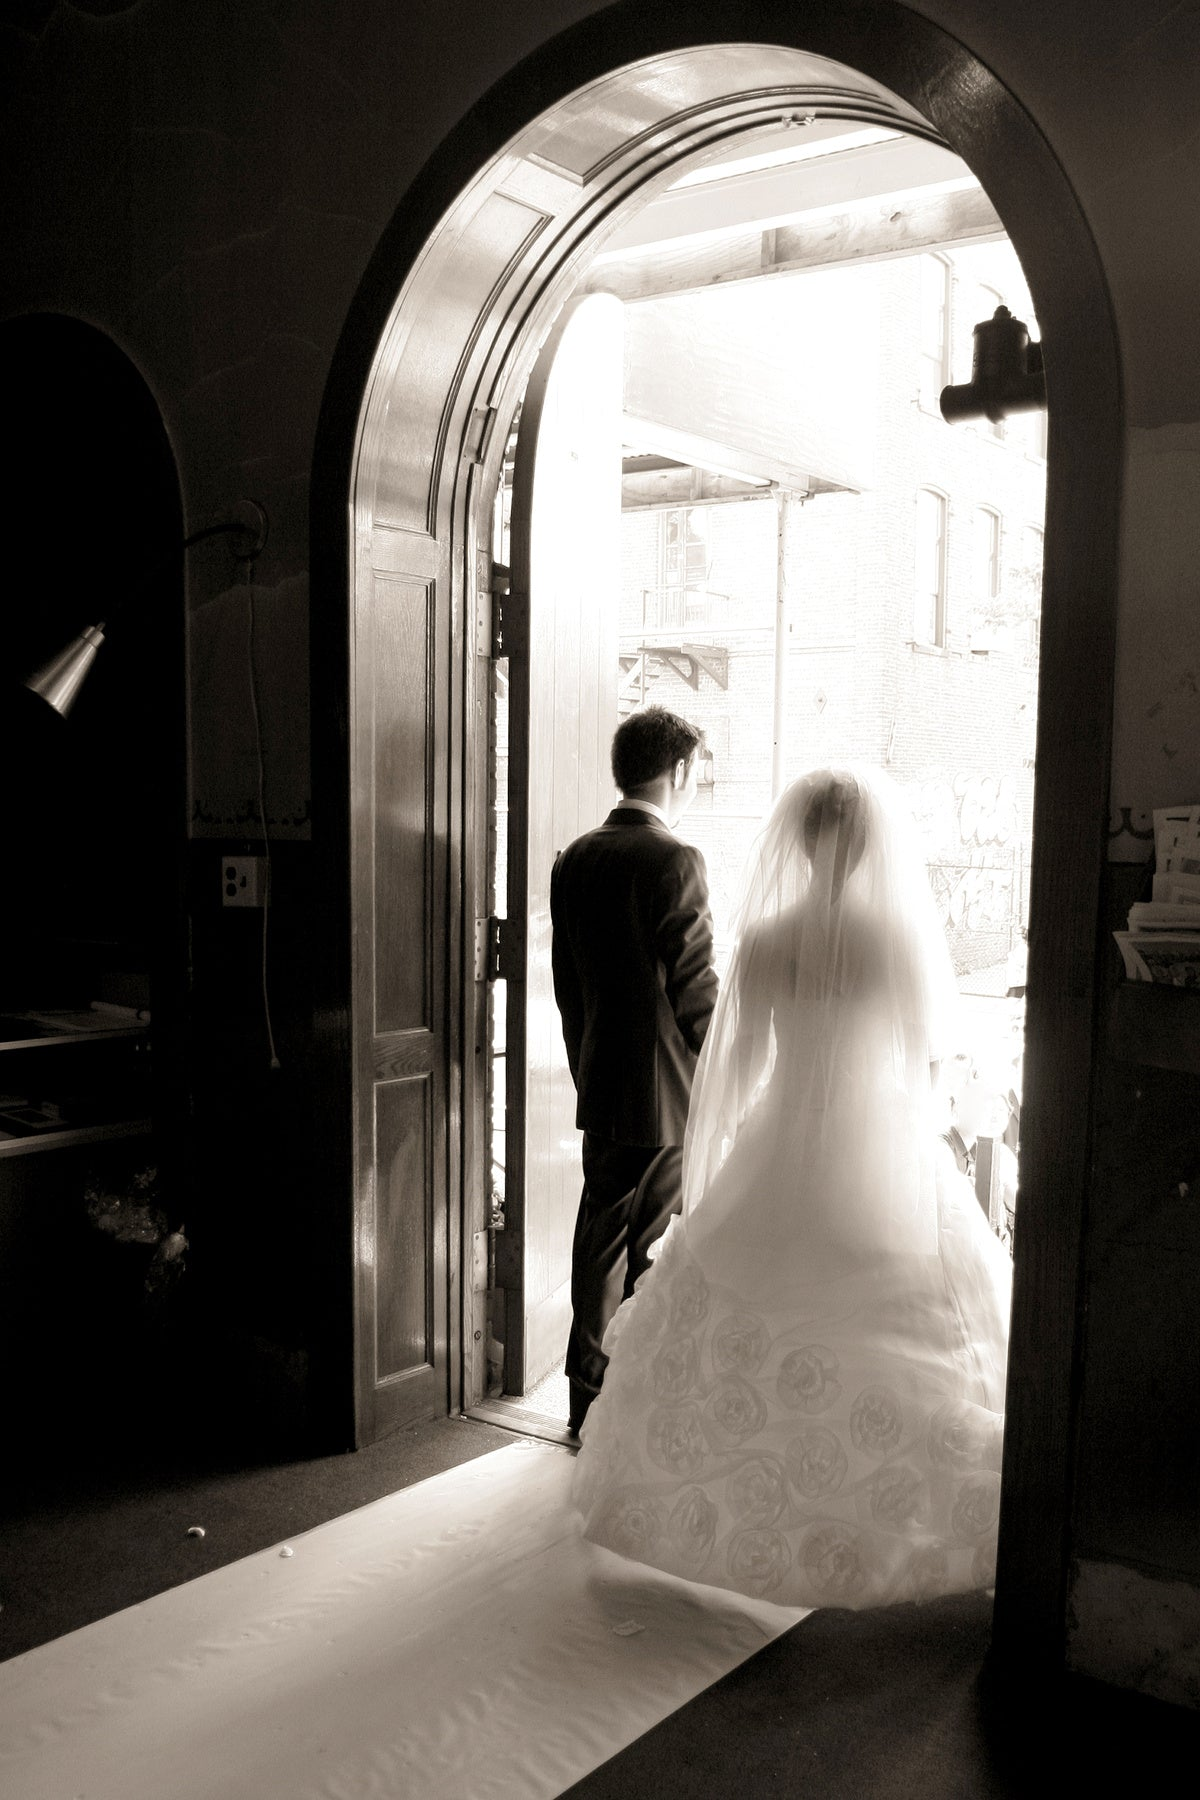 Example of using compositional framing in wedding photography